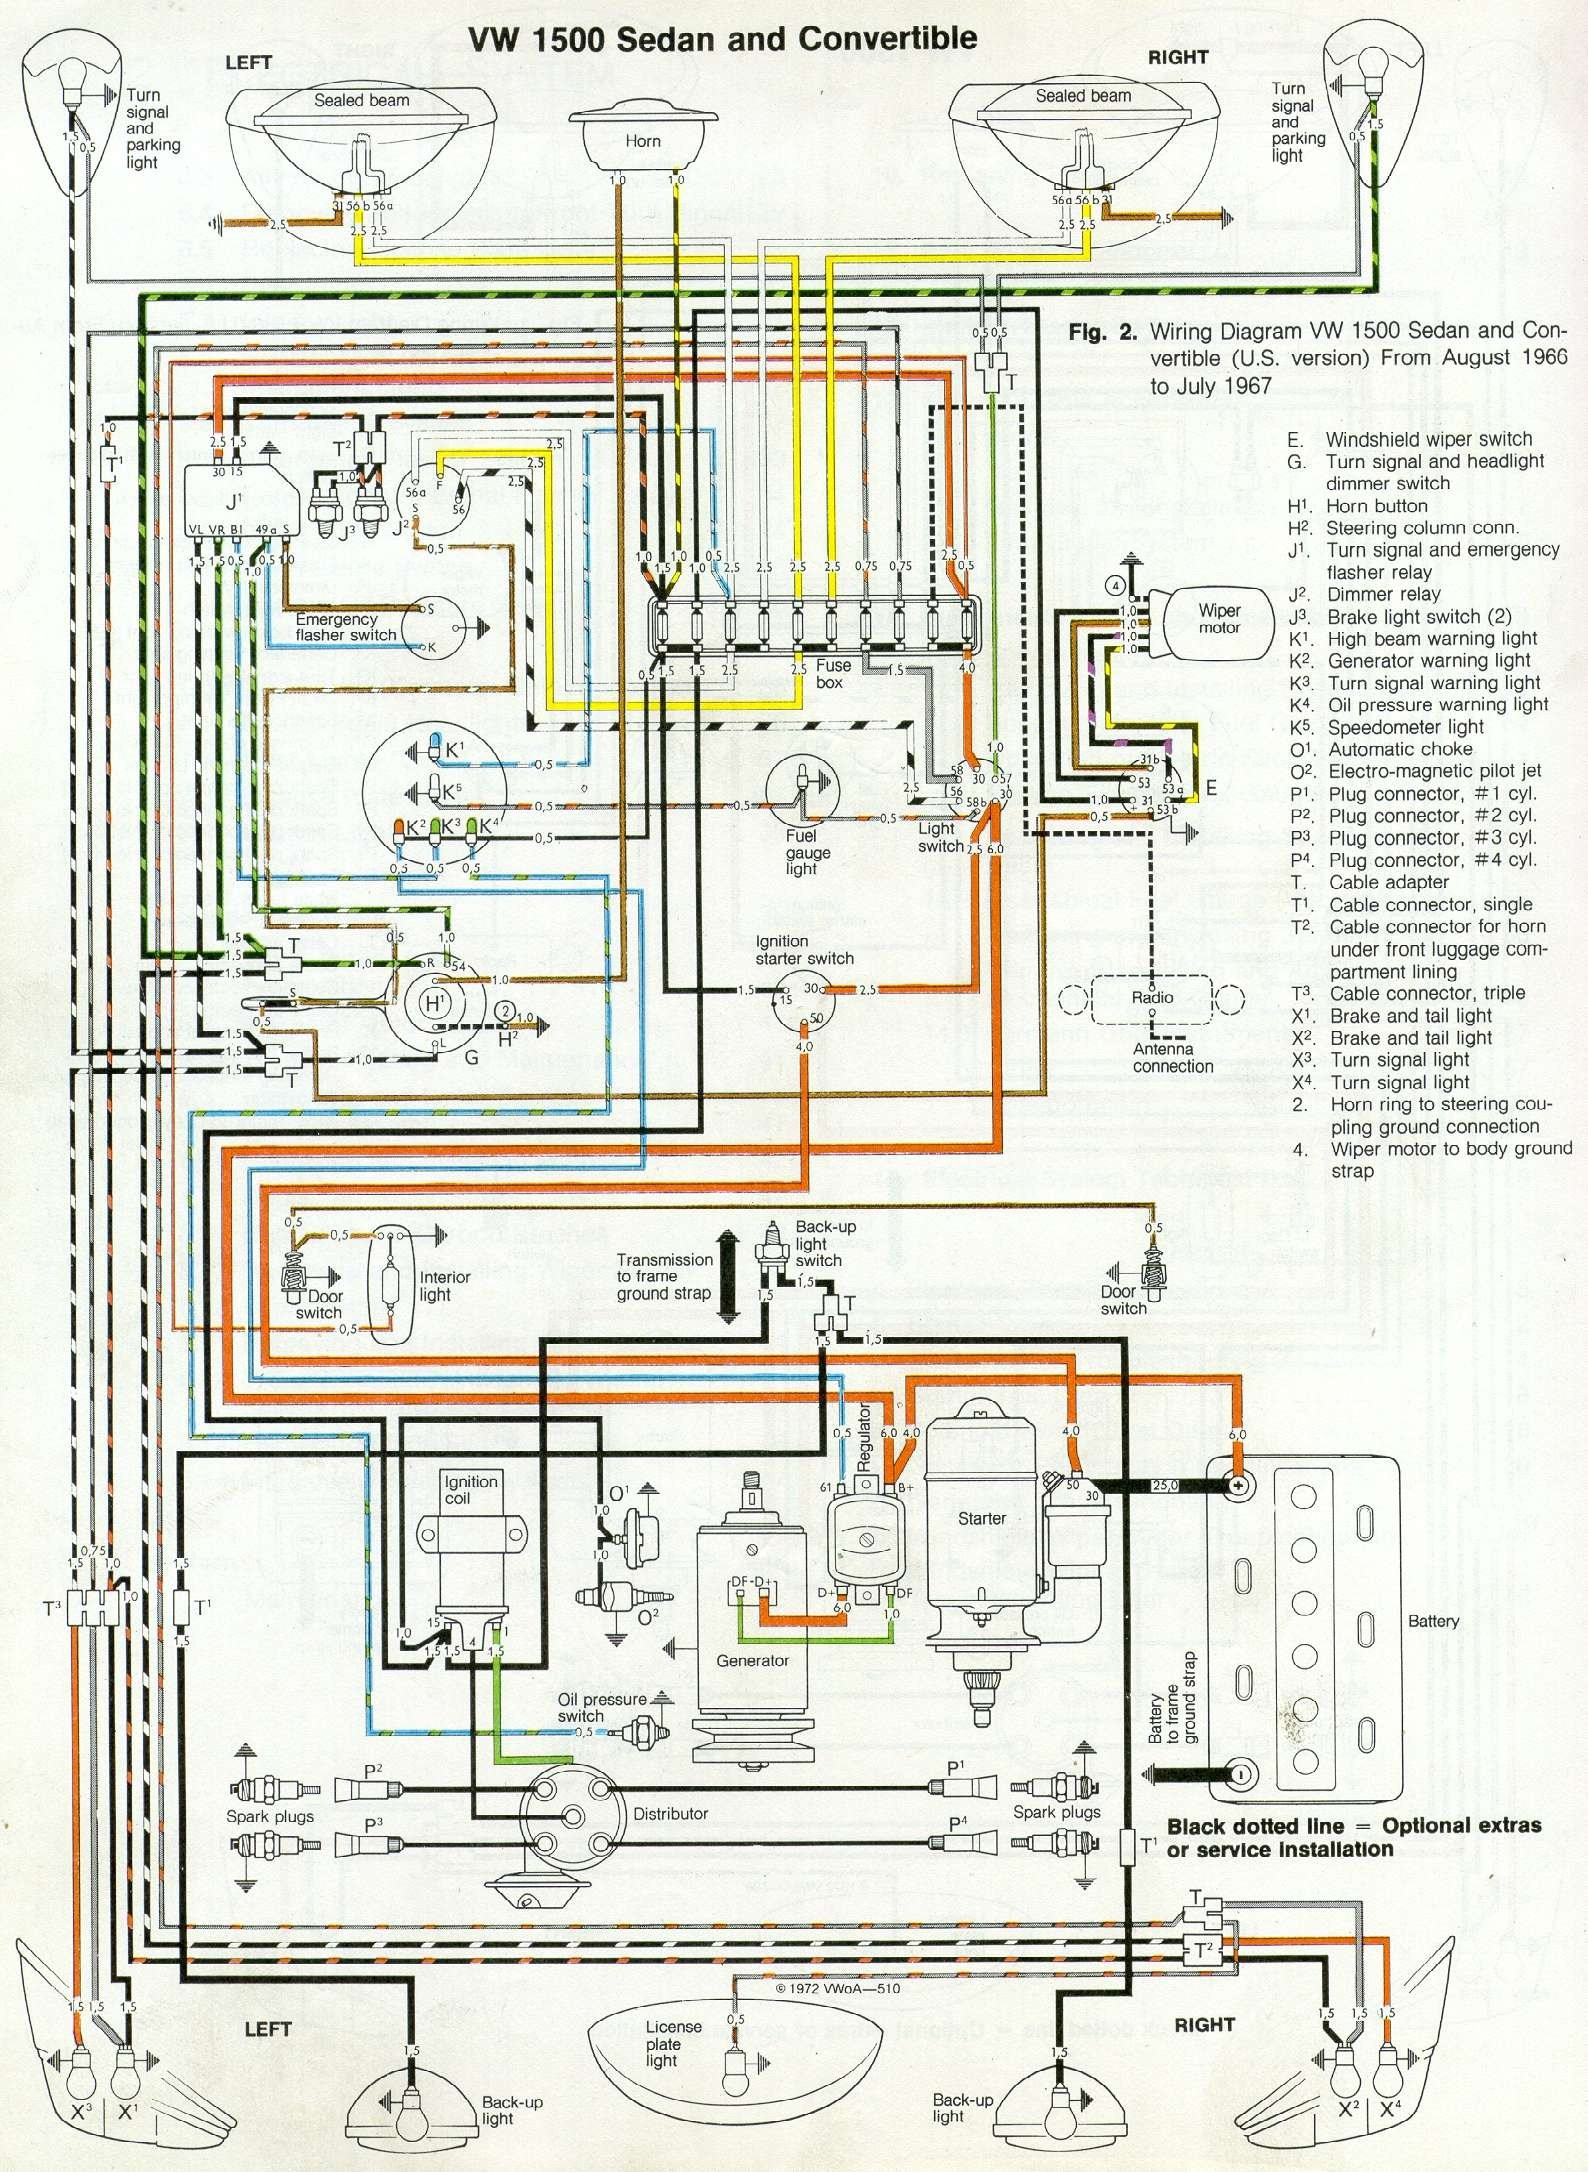 VW Beetle Wiring Digram 67 beetle wiring diagram u s version 1967 vw beetle beetle wiring diagram to fix a/c fan at n-0.co